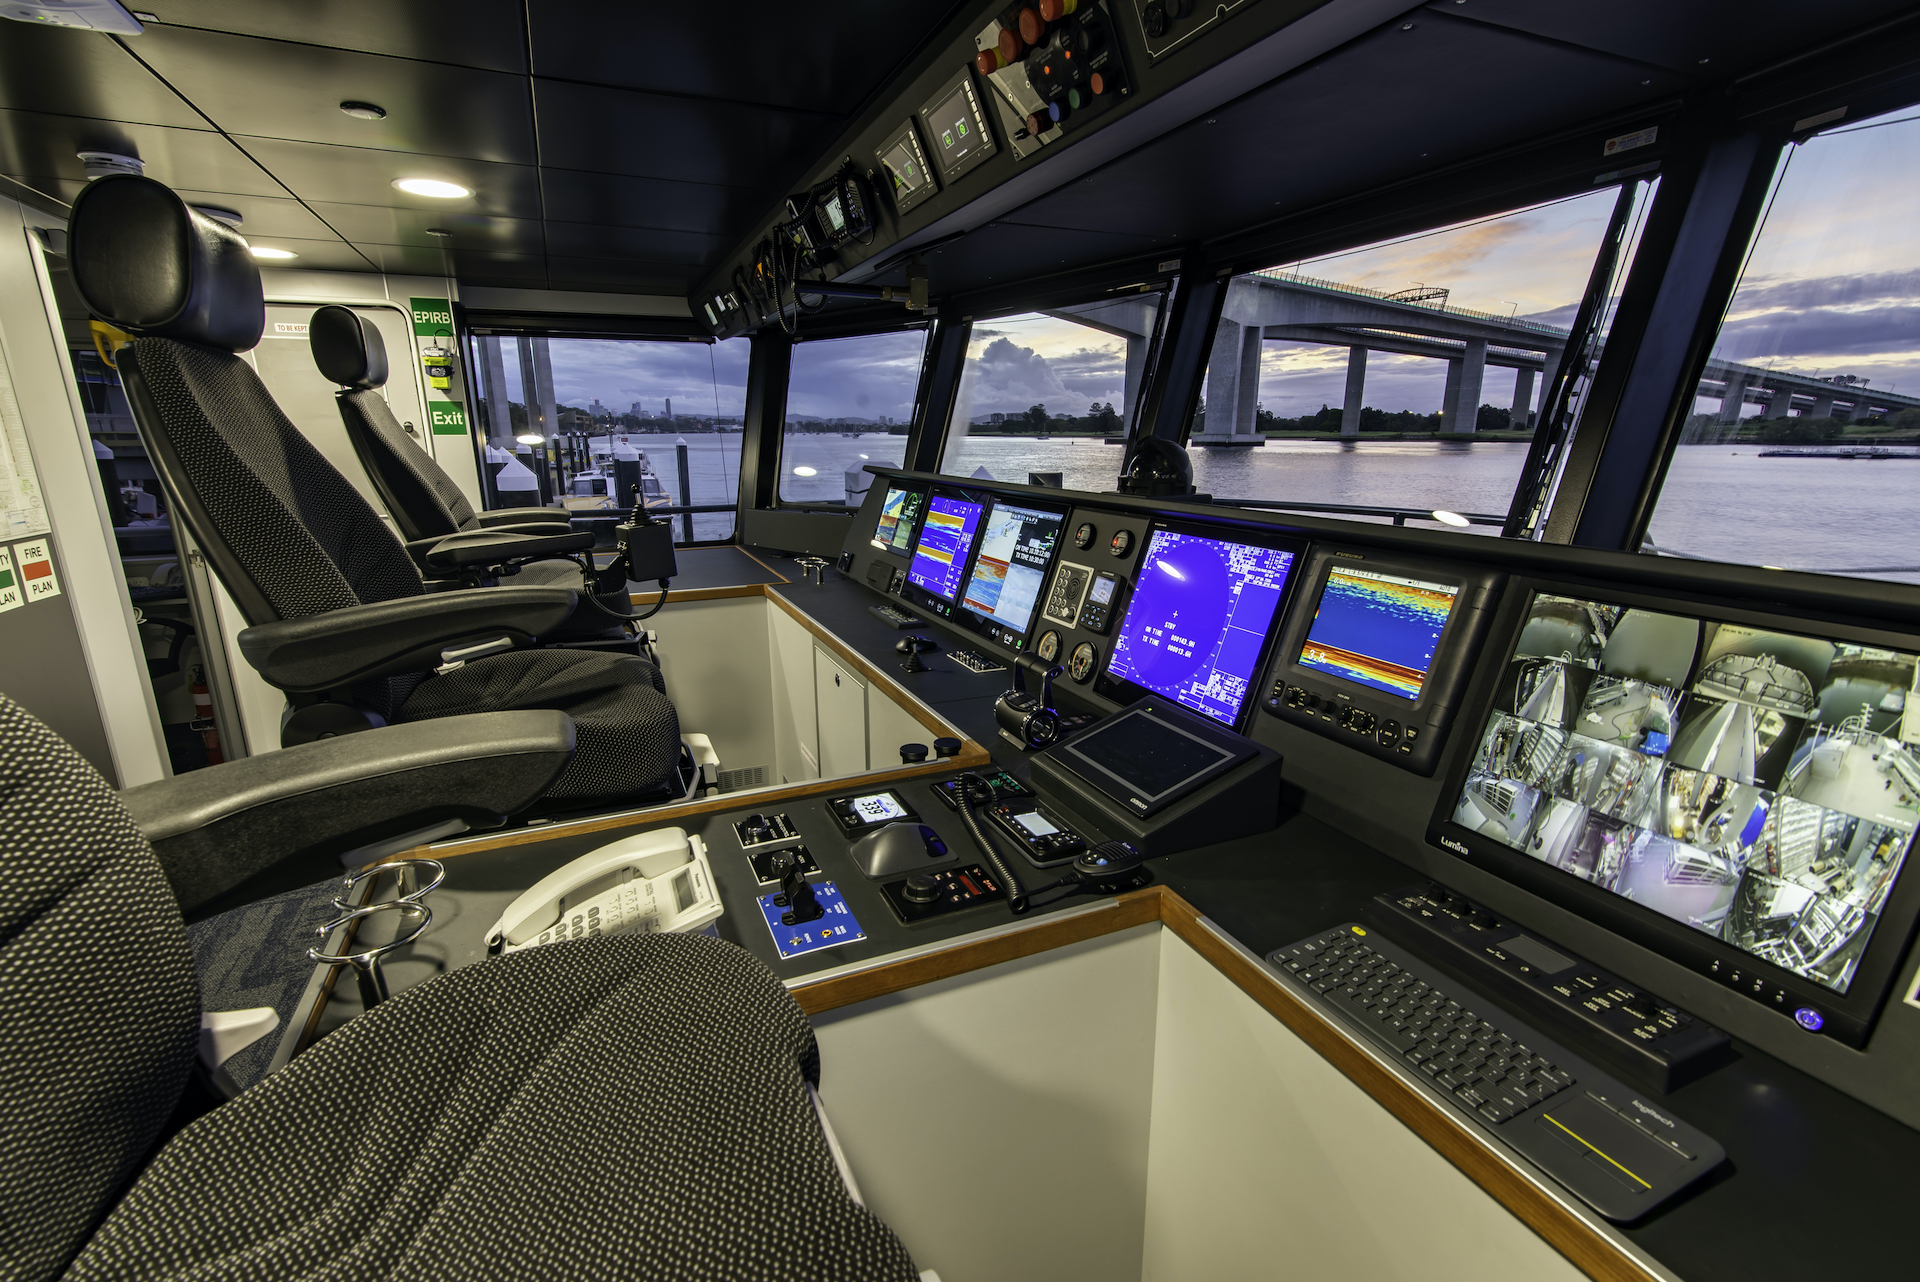 control room onboard the Reef Resilience